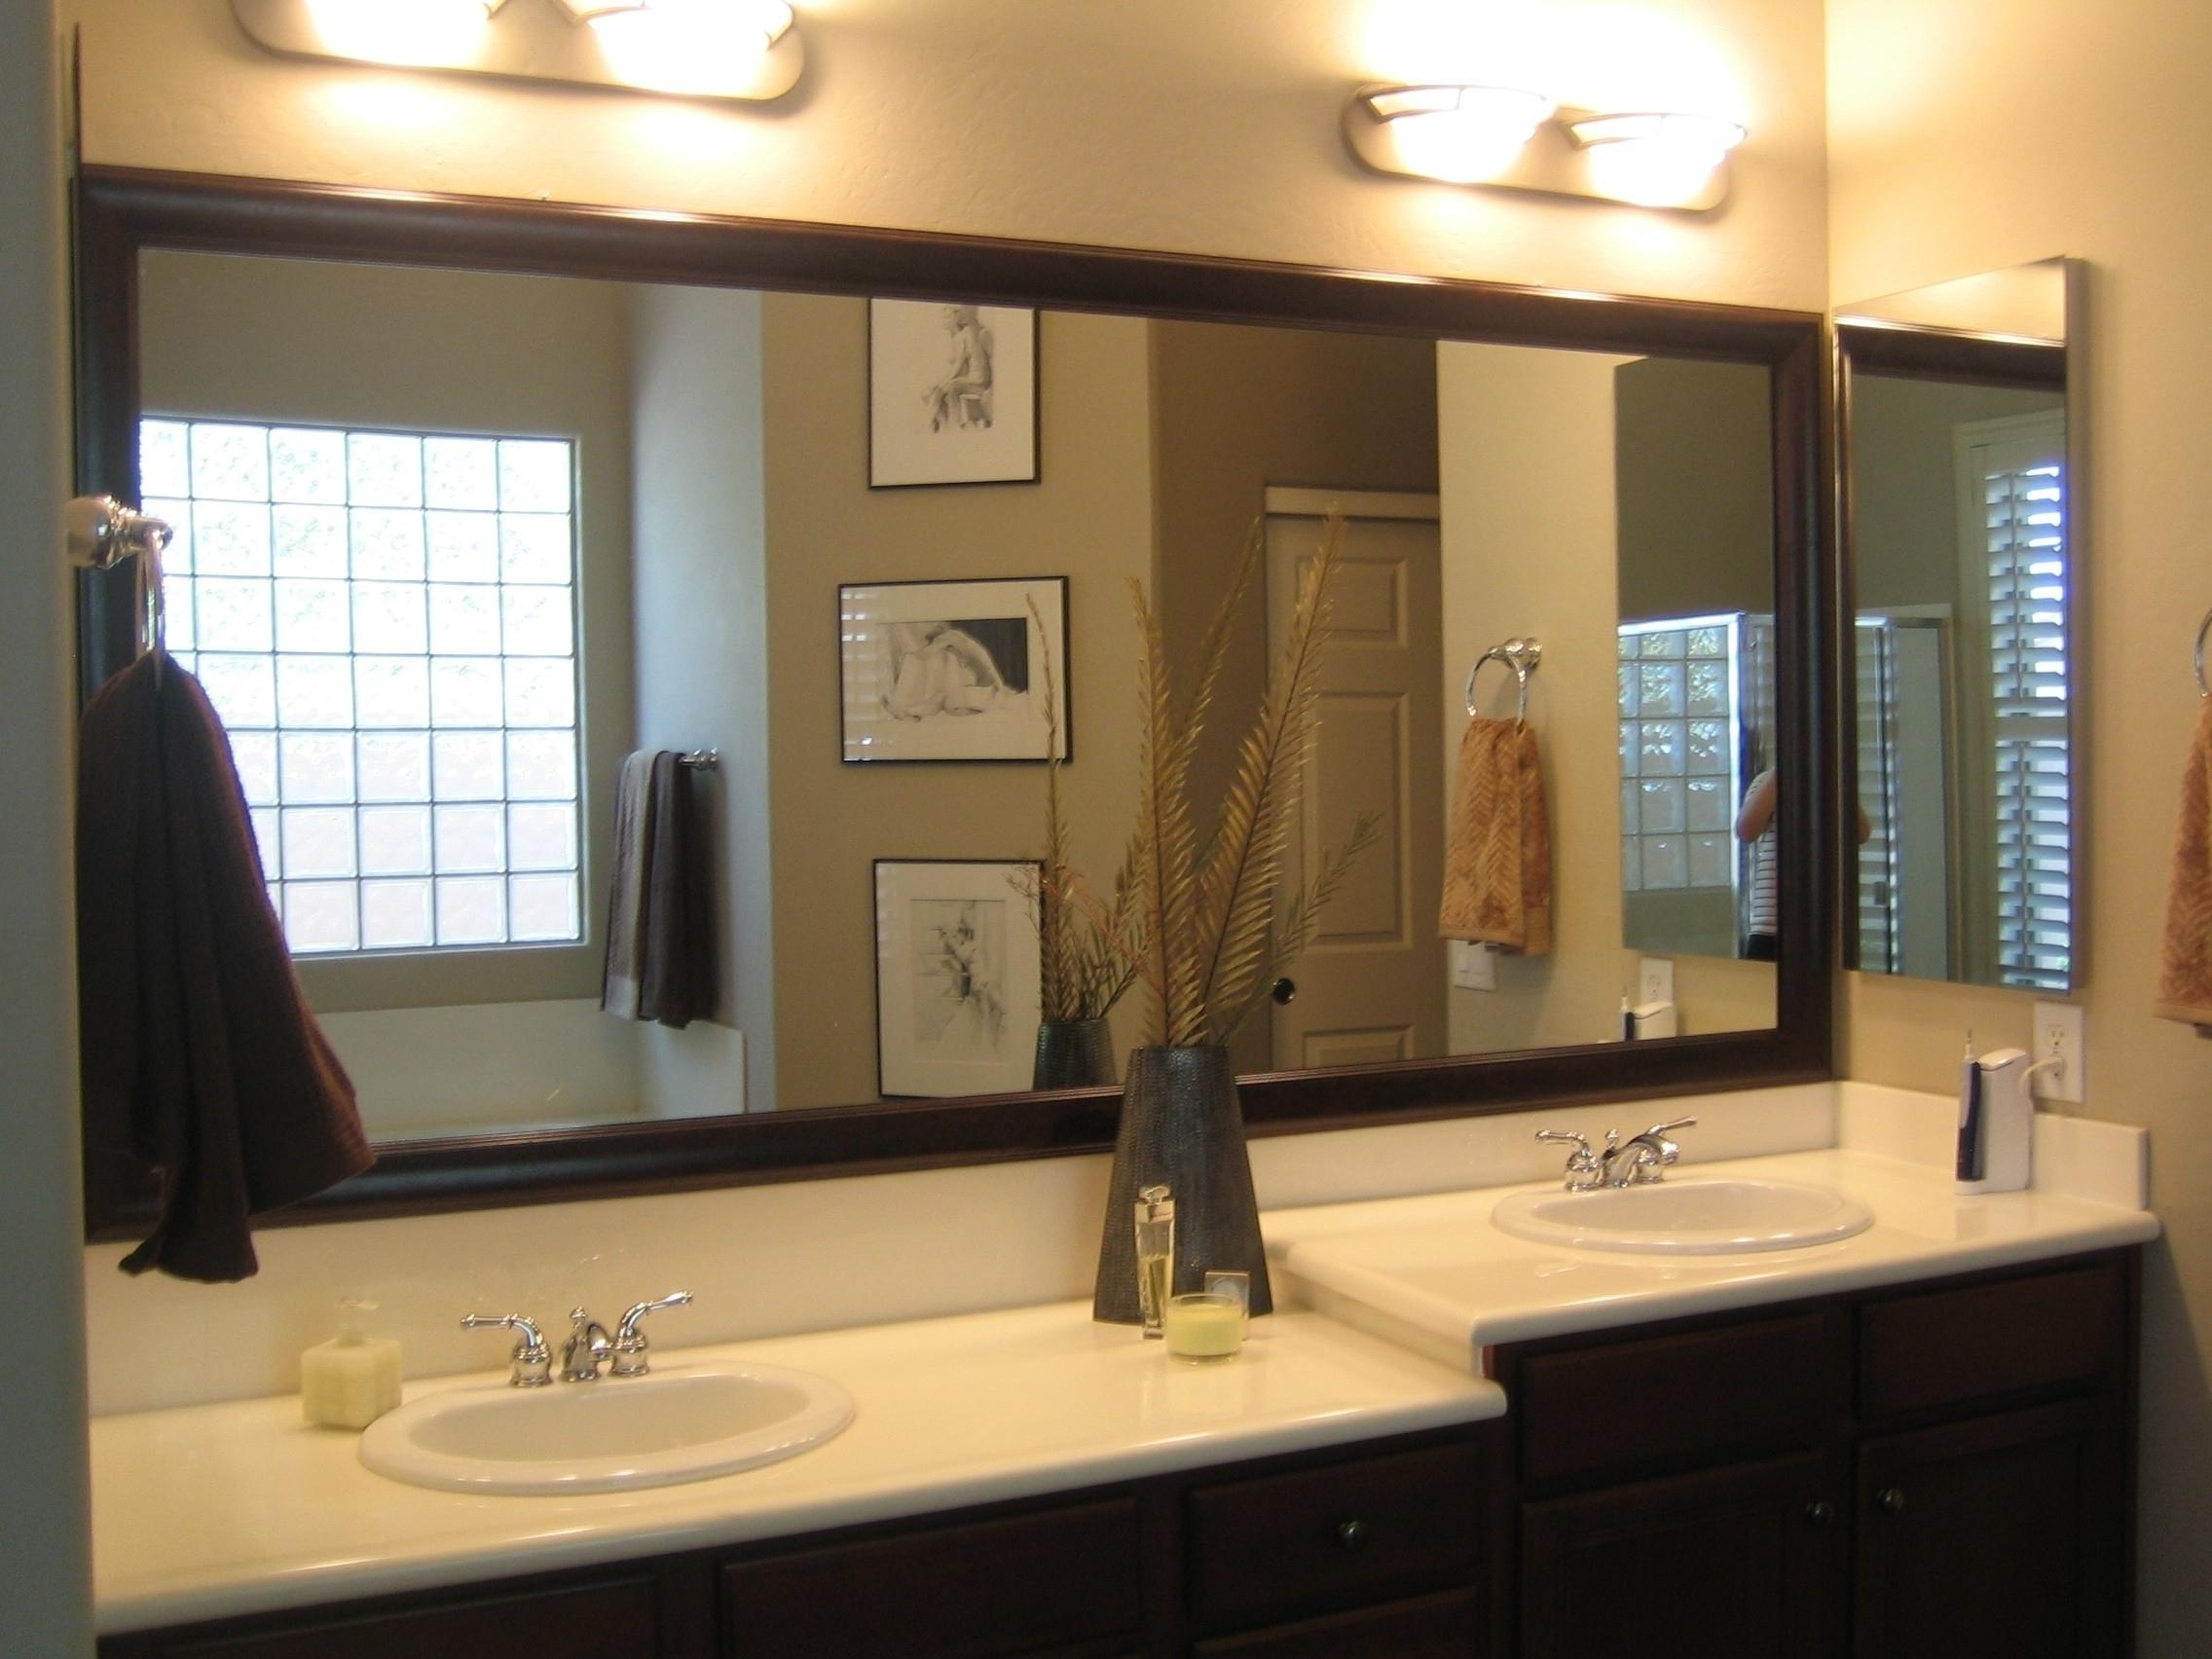 Showy Step How To Frame A Bathroom Mirror Diy To Outstanding Pertaining To Large Framed Bathroom Wall Mirrors (Image 19 of 20)